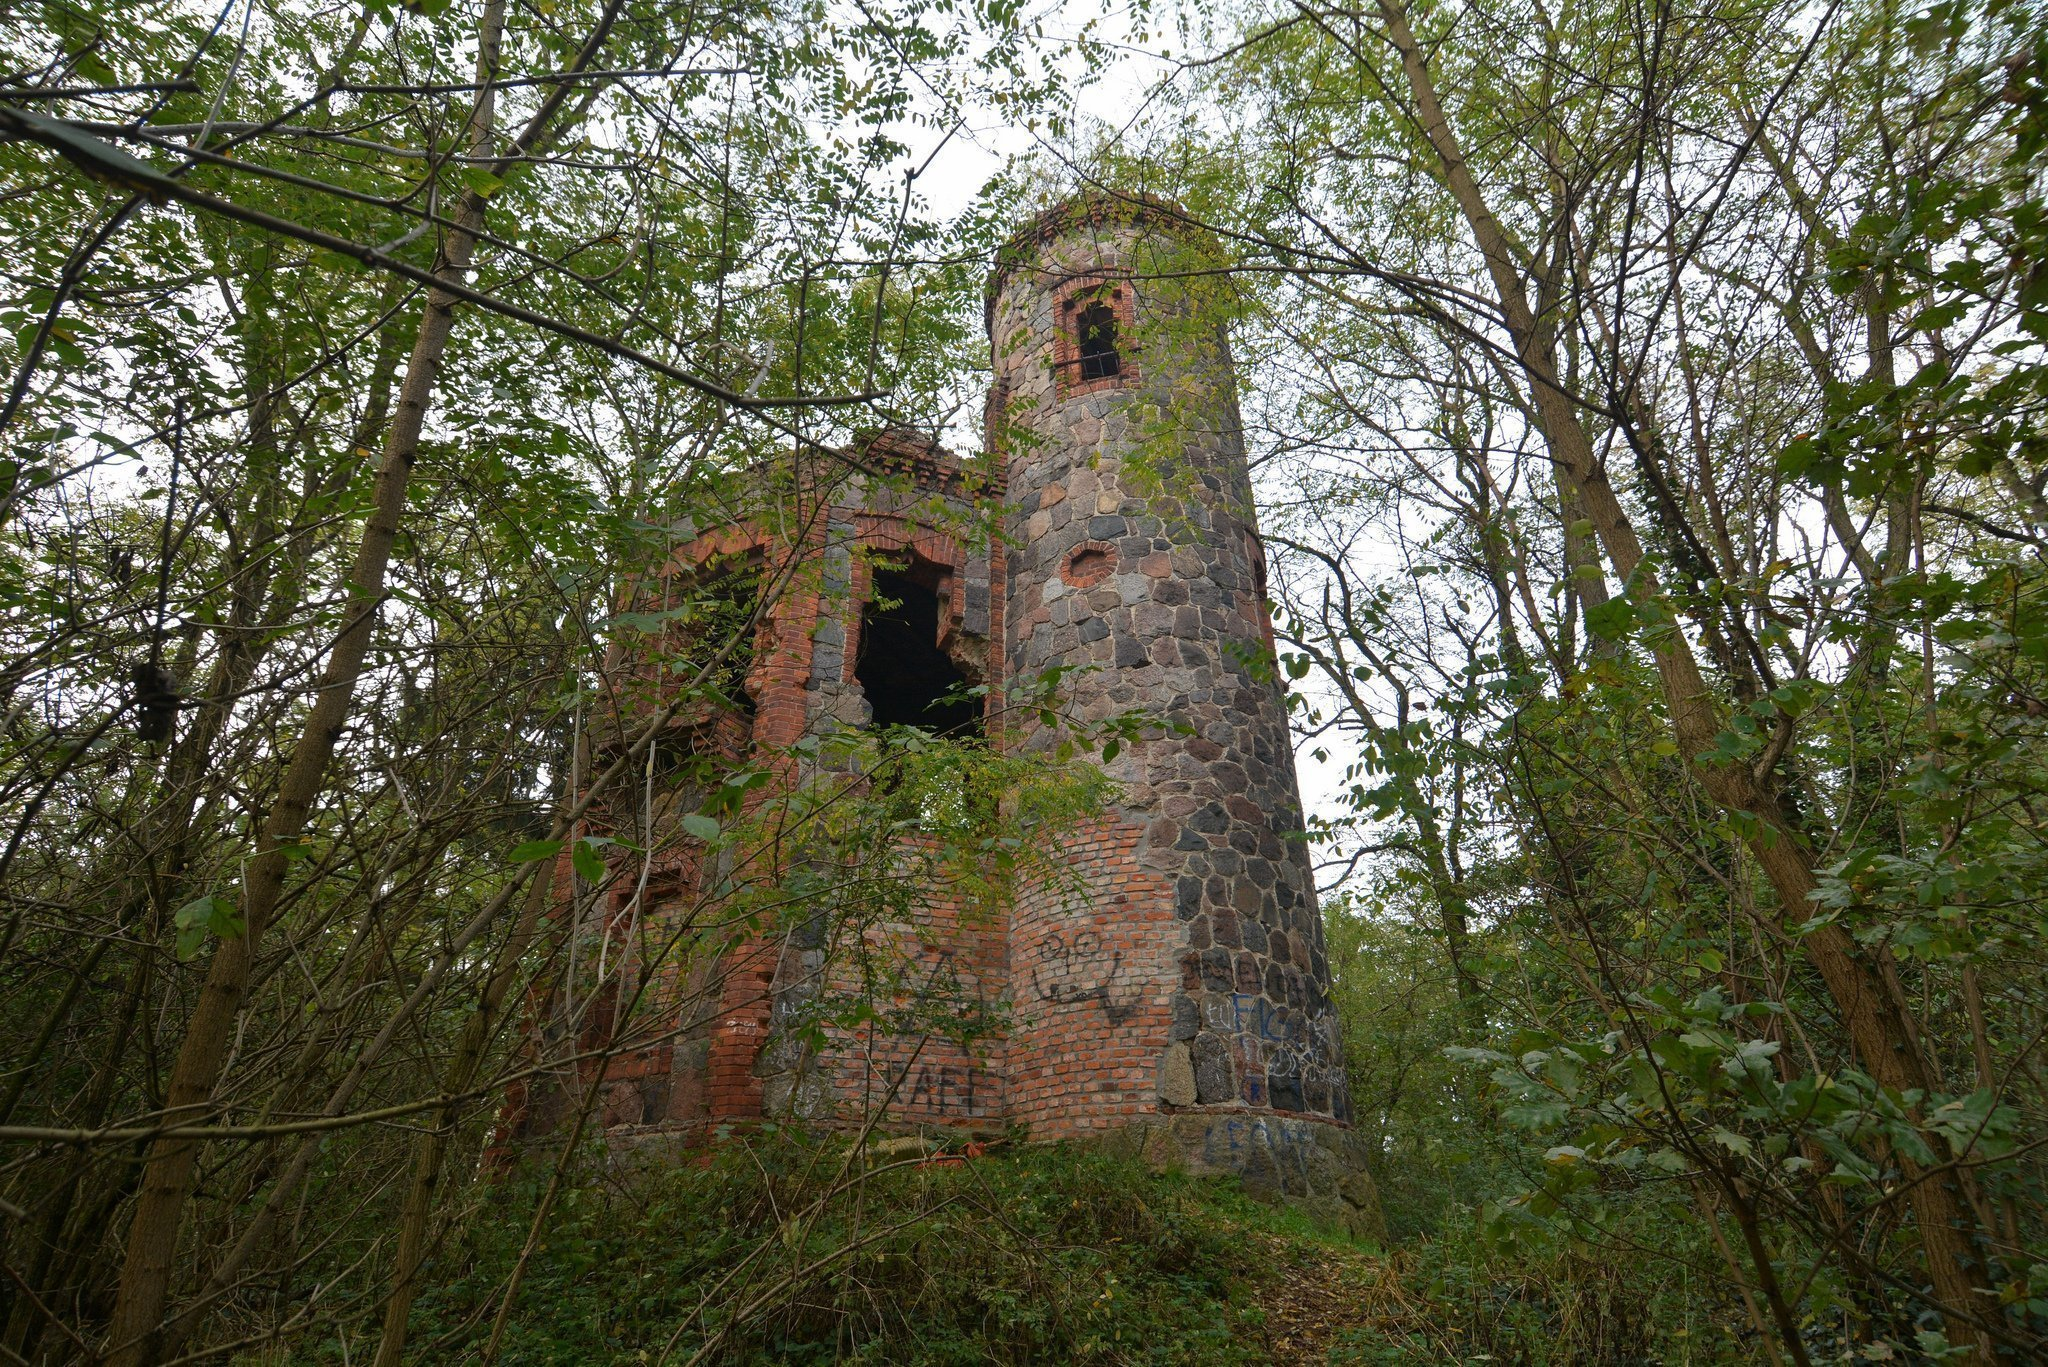 abandoned castle europe hidden forest